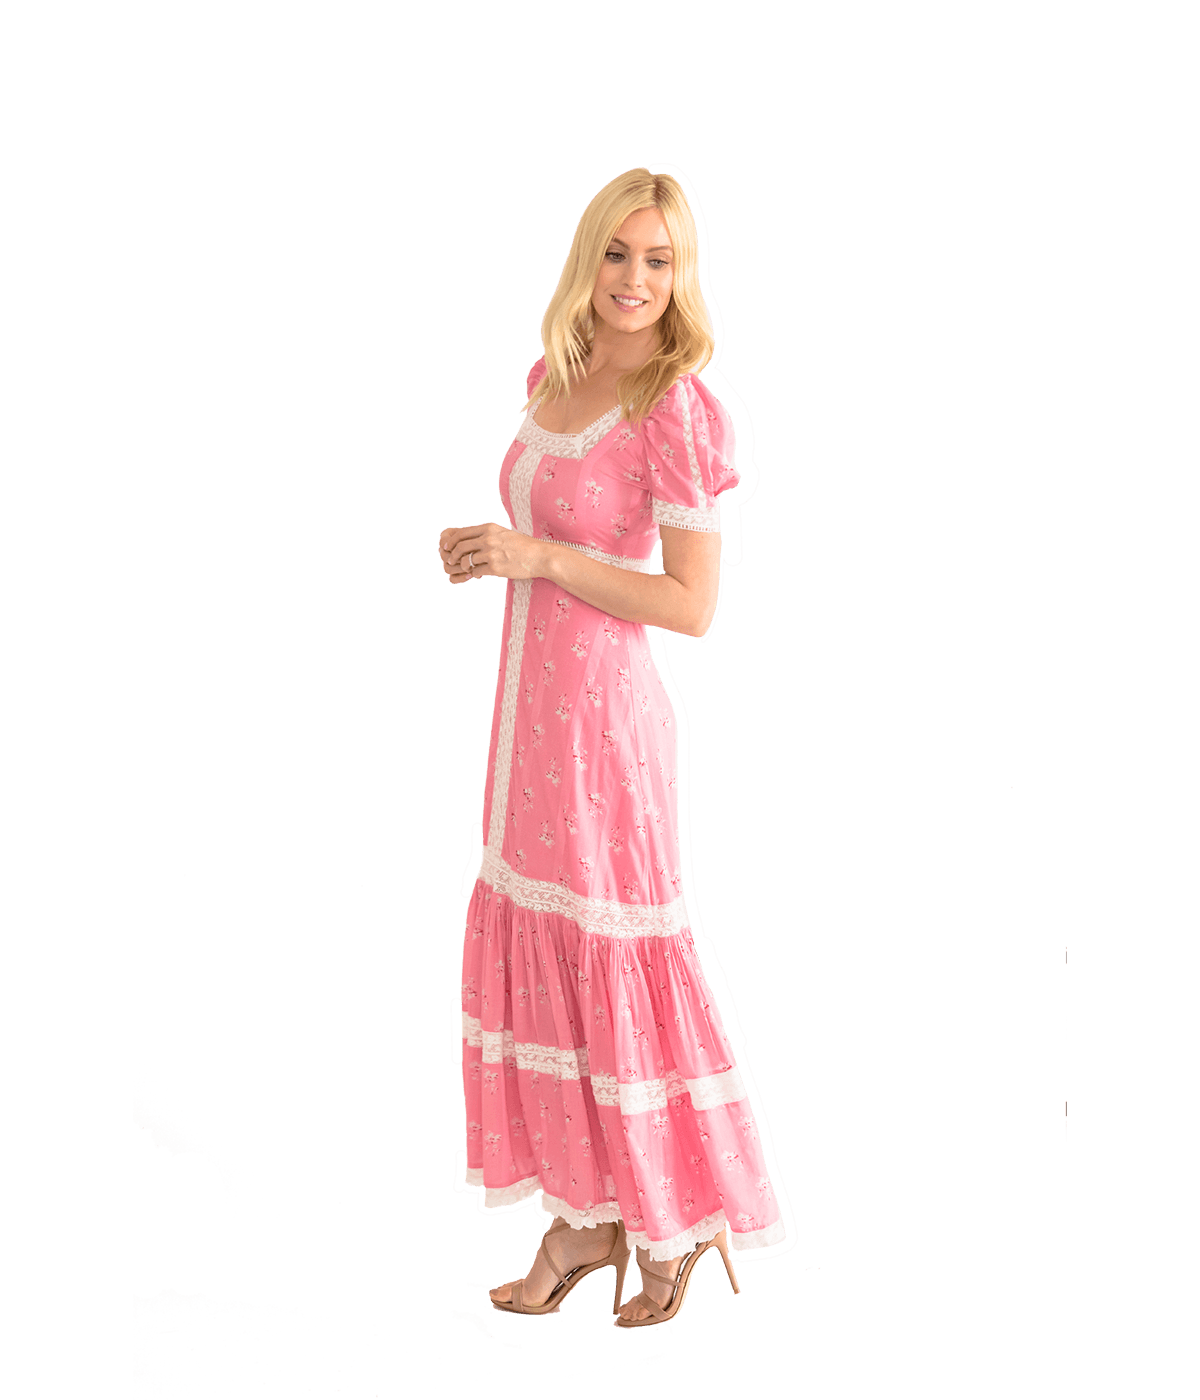 Ryan Dress - Pink Jam - Lady Jetset